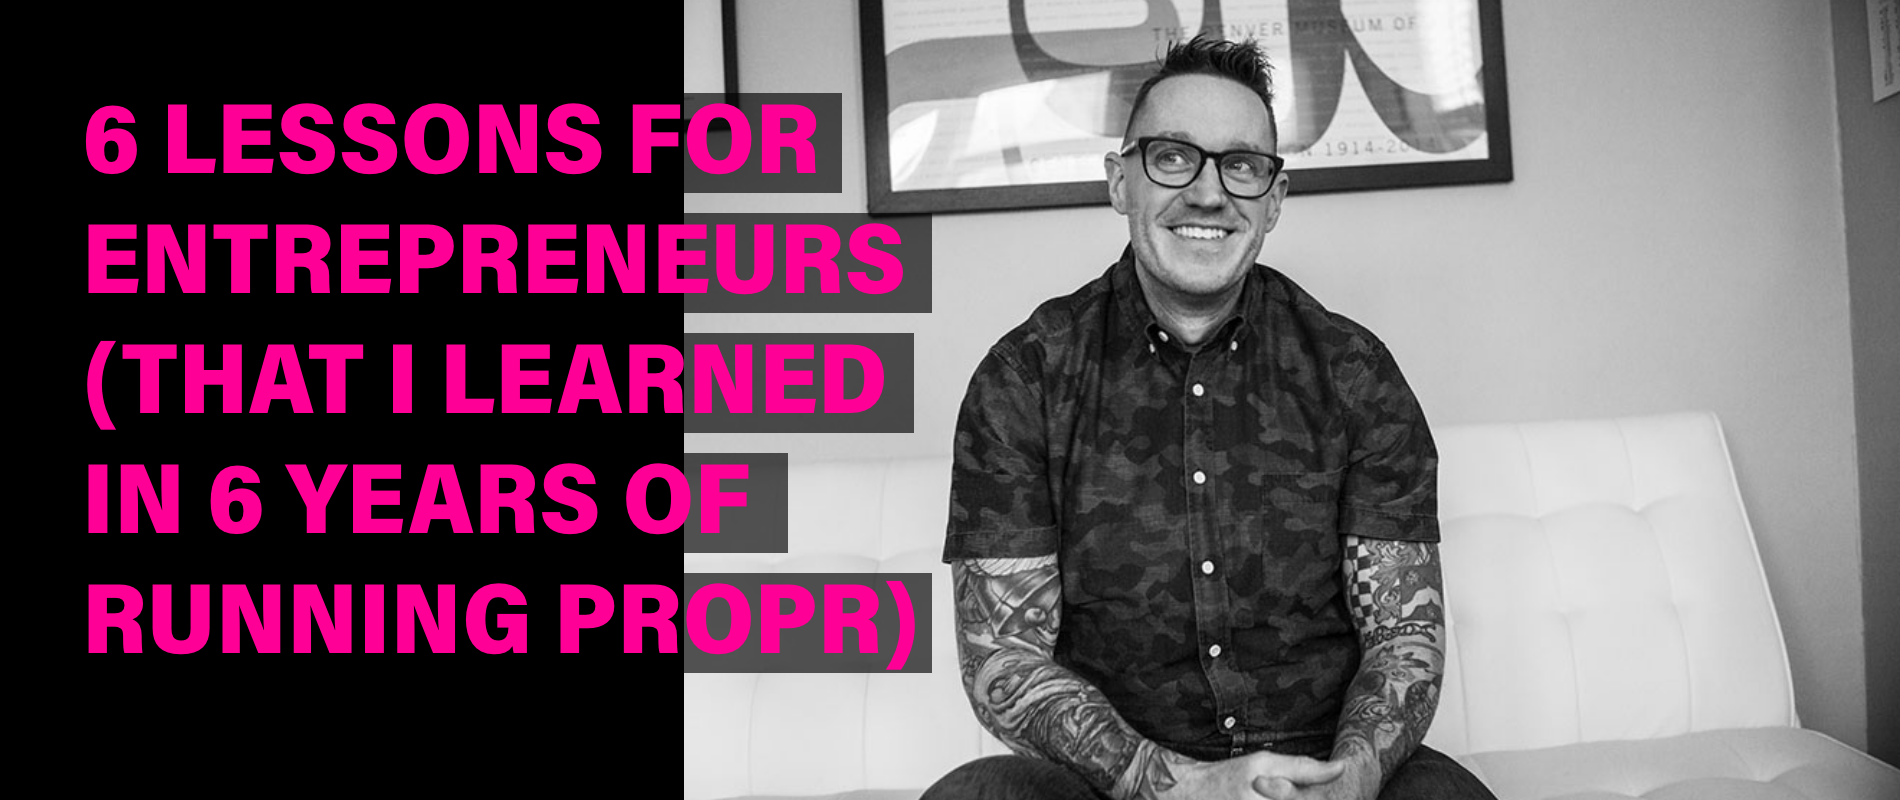 6 Lessons for Entrepreneurs (That Bob Gillespie learned in 6 years of running Propr)